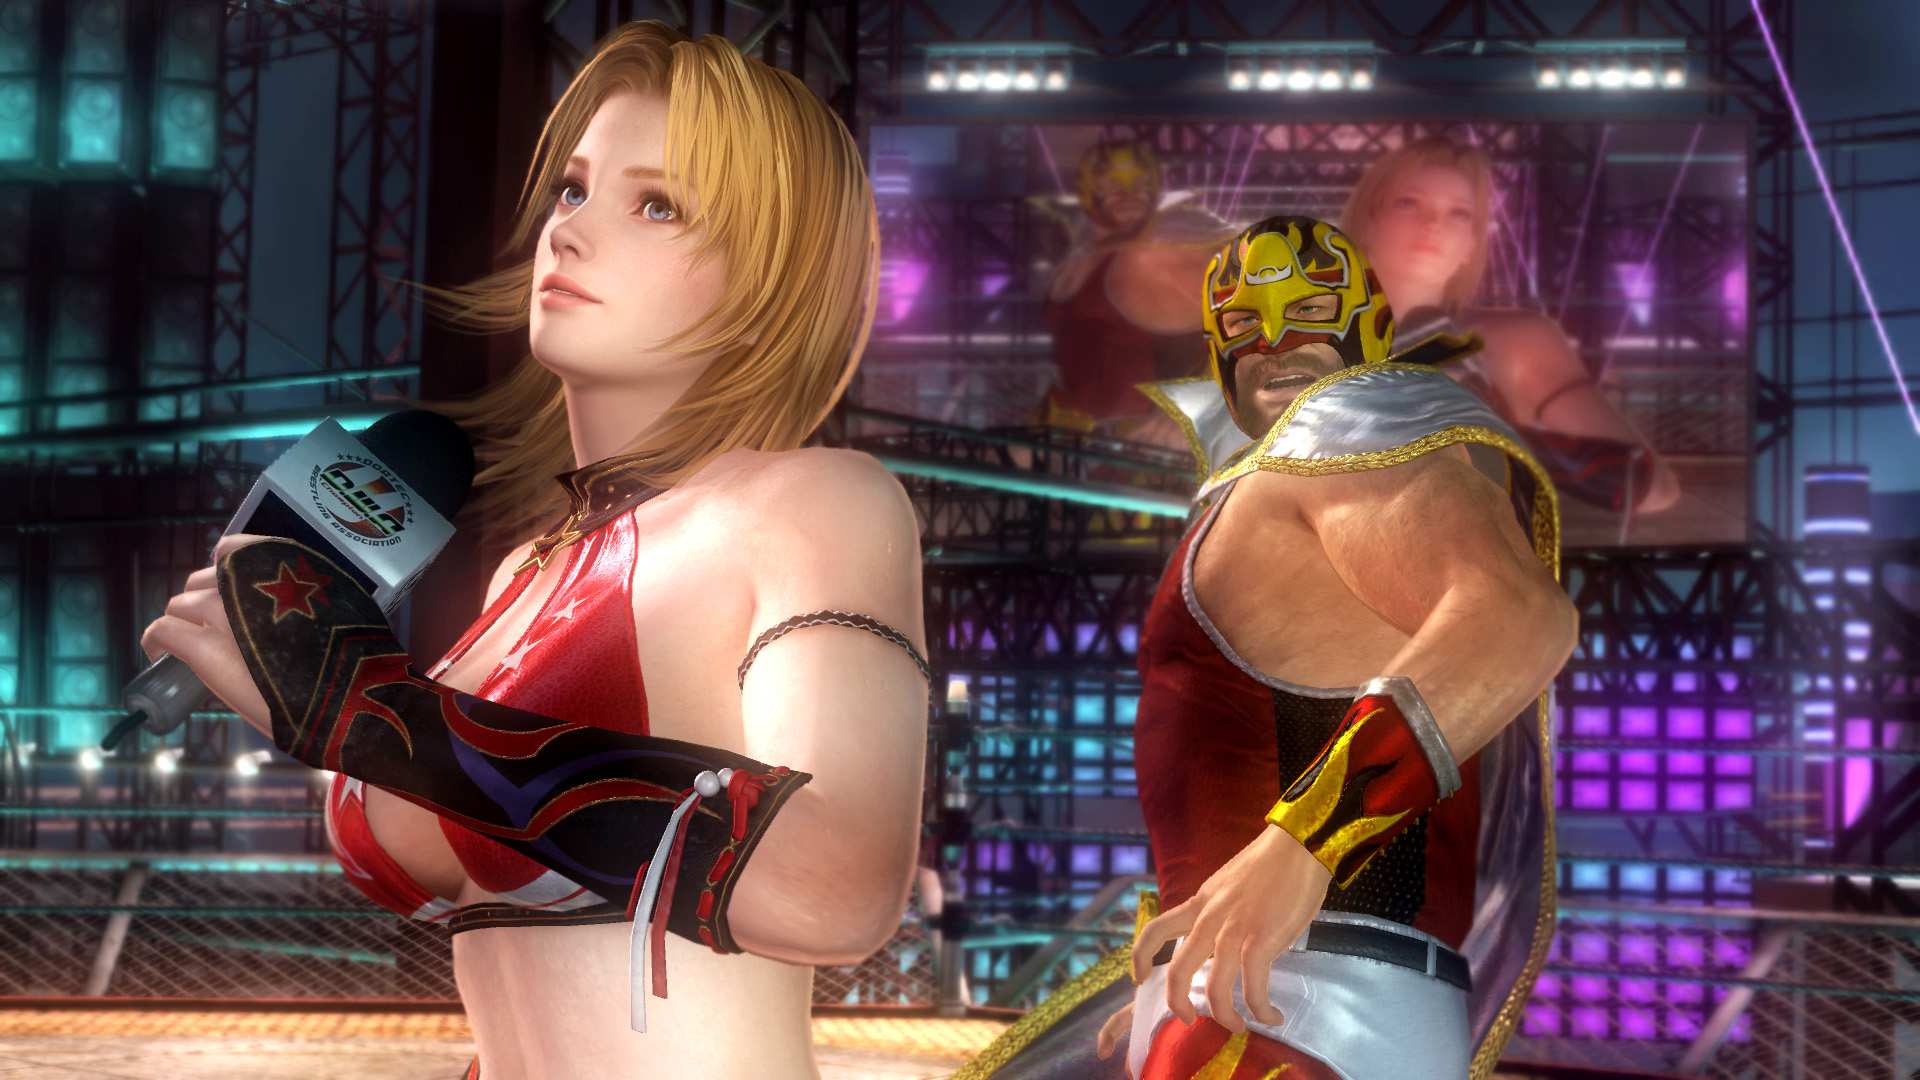 Jann Lee Takes On Tina In Dead Or Alive 5's Tag Mode | Kotaku ...